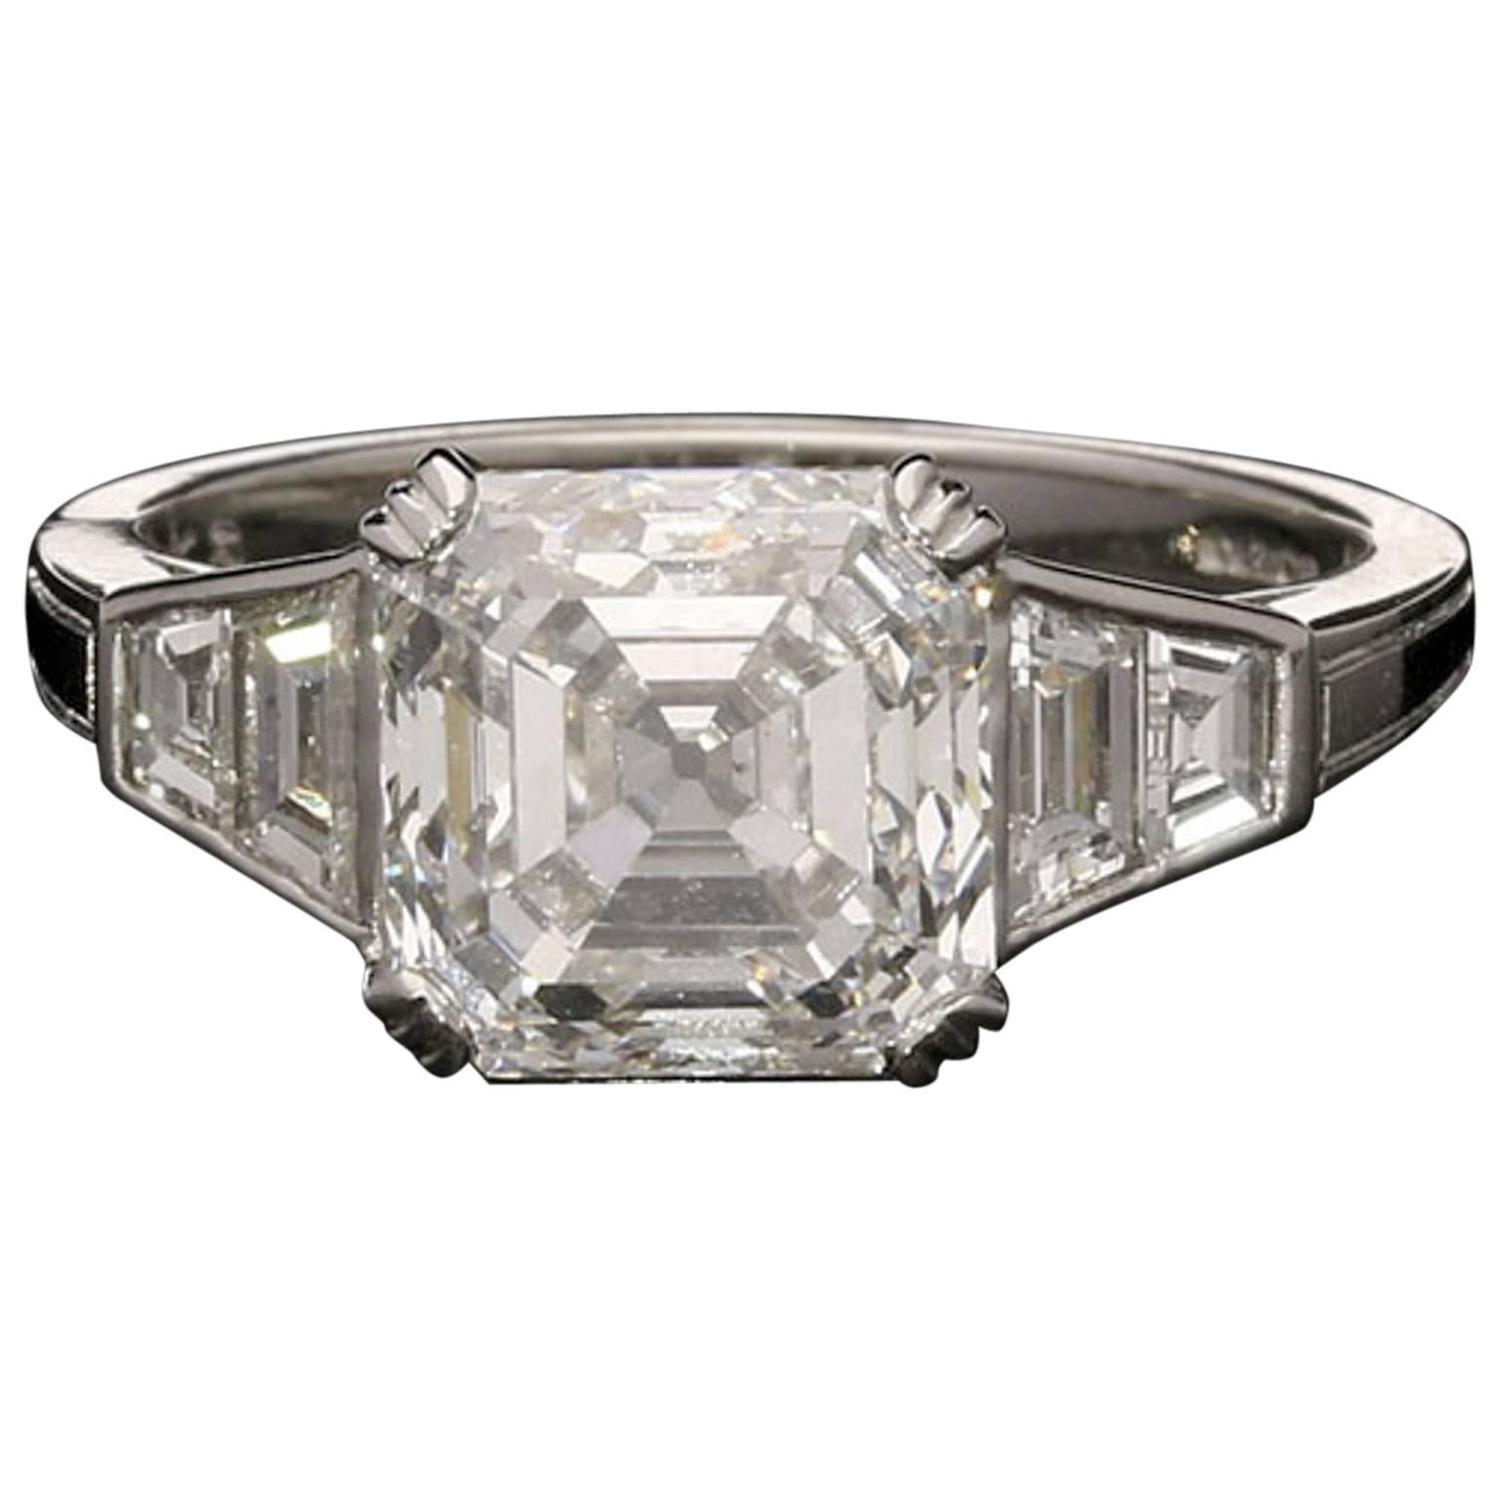 zoom cut boodles asher the false upscale crop shop scale eternal subsampling product engagement ring diamond asscher